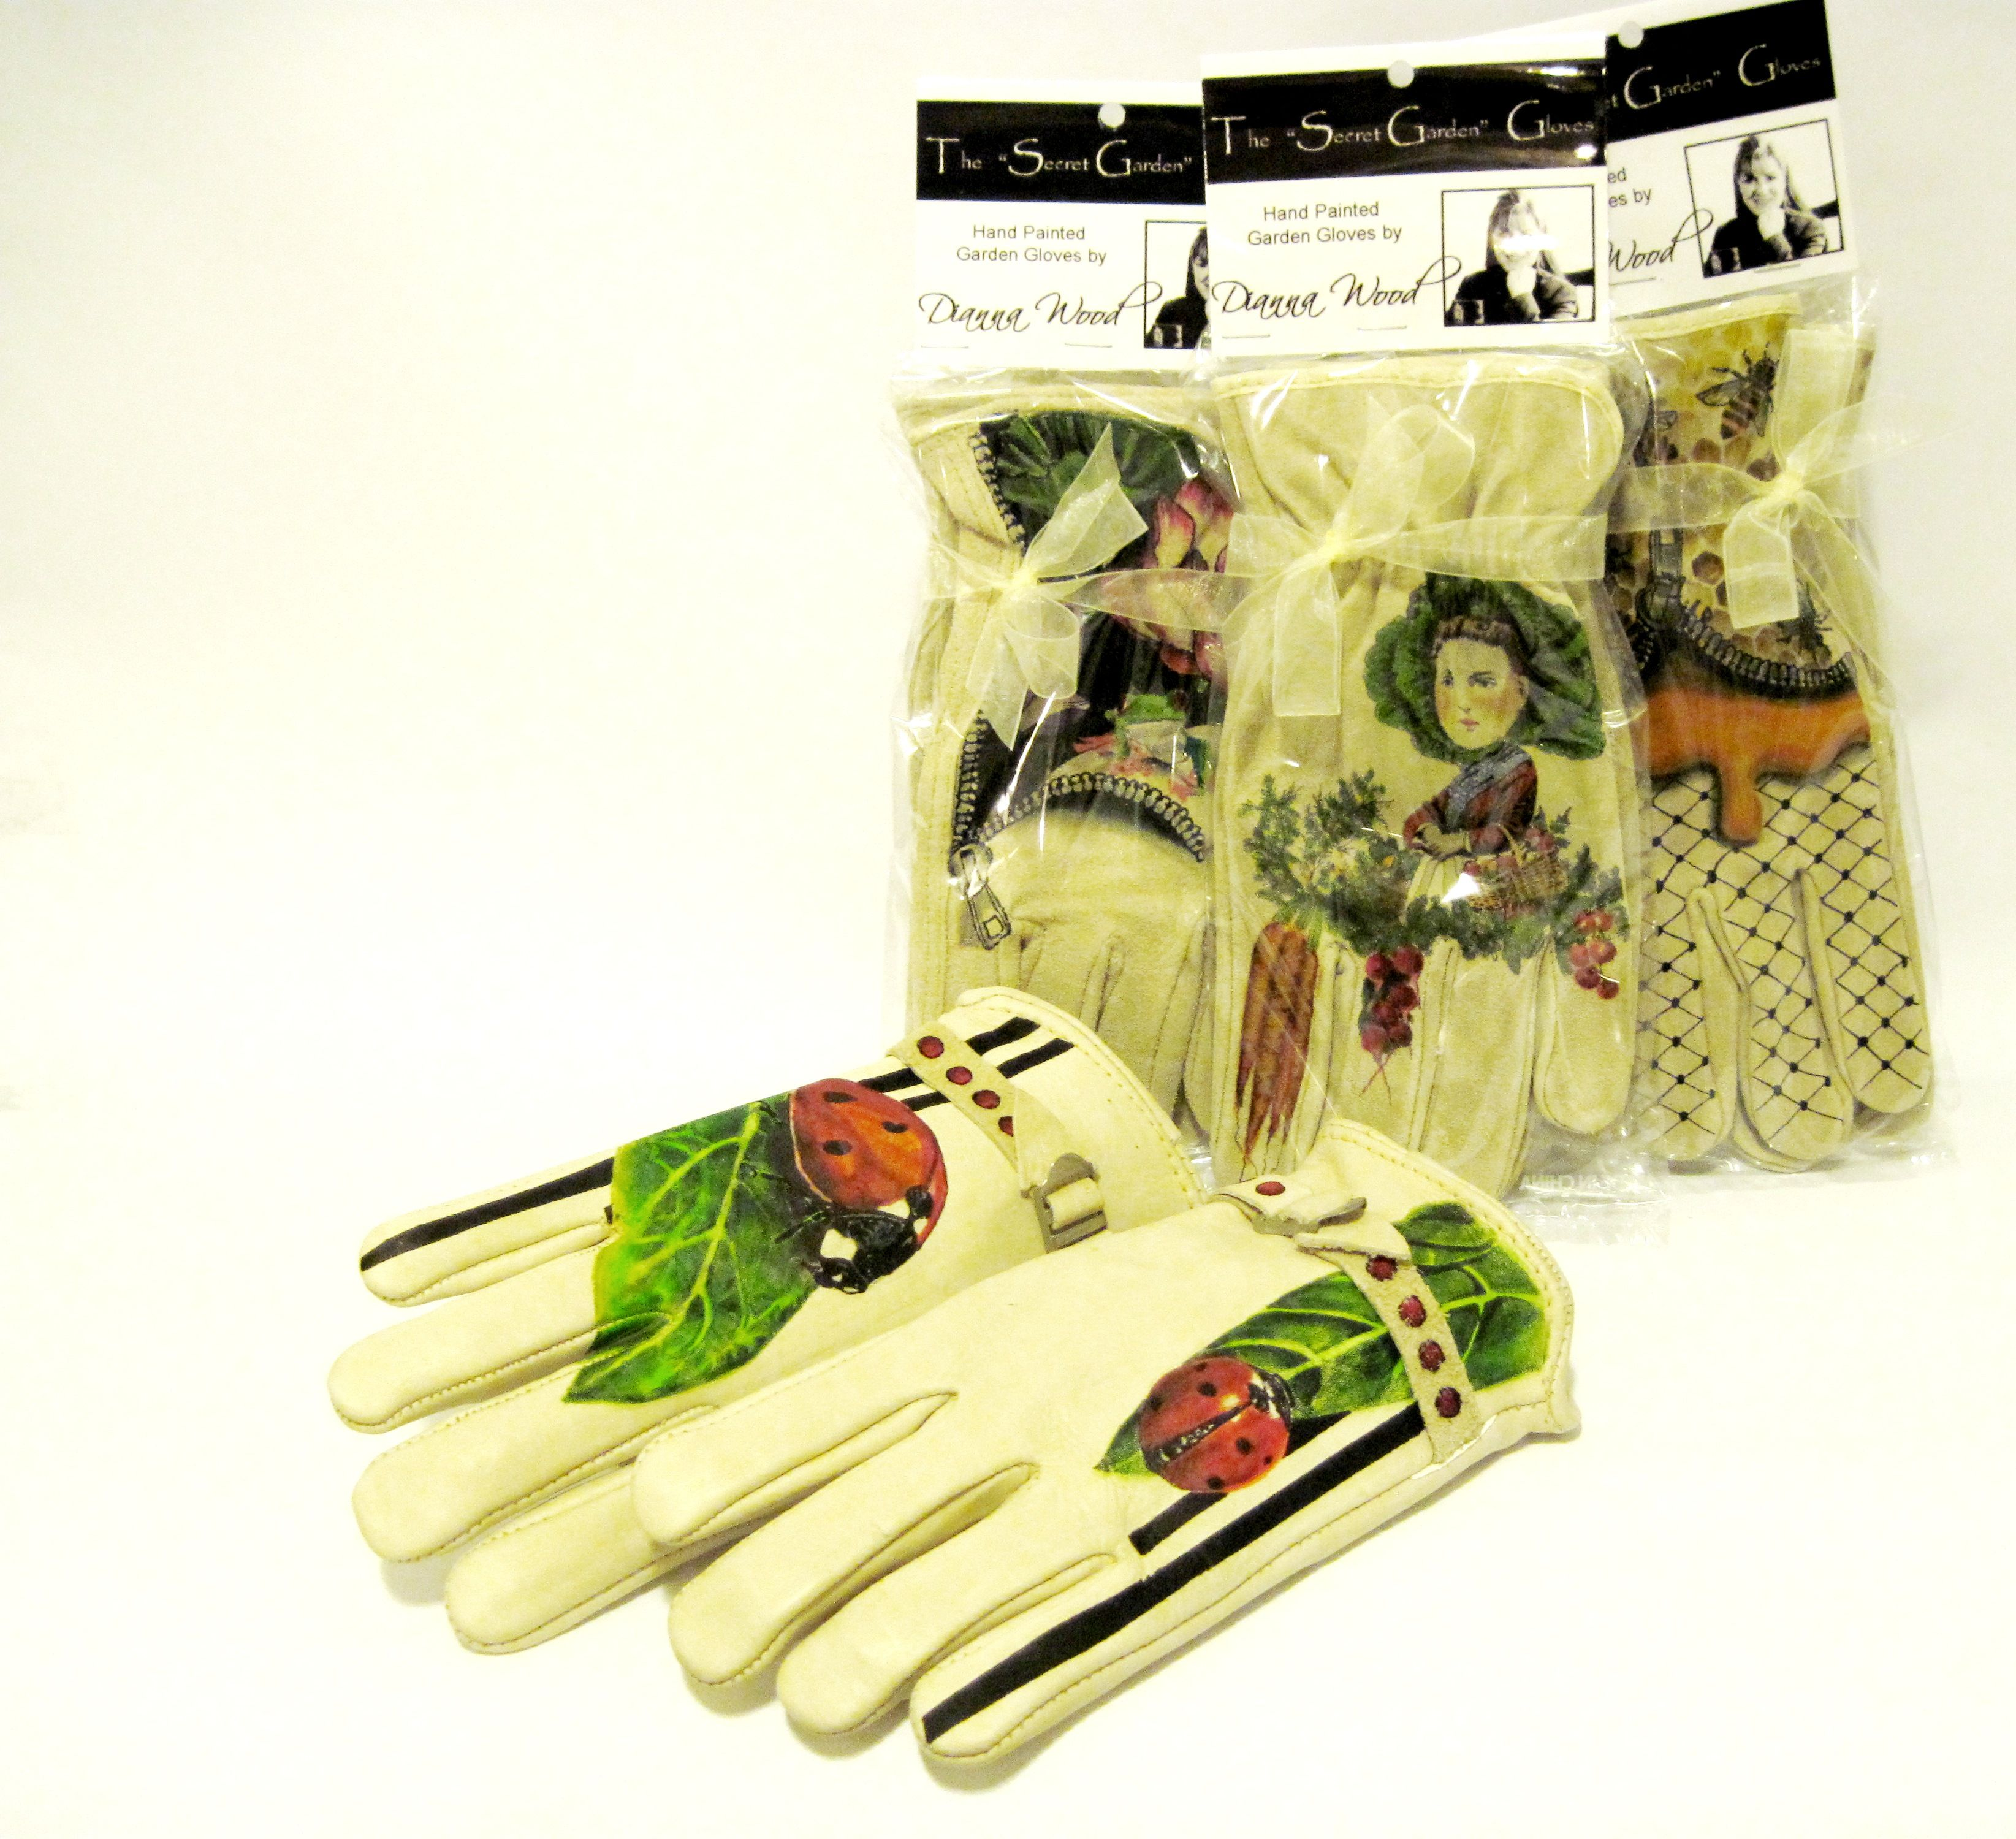 Hand Painted Gloves for the Garden, Ladybug theme by Dianna Wood www.thewoodssecretgarden.etsy.com